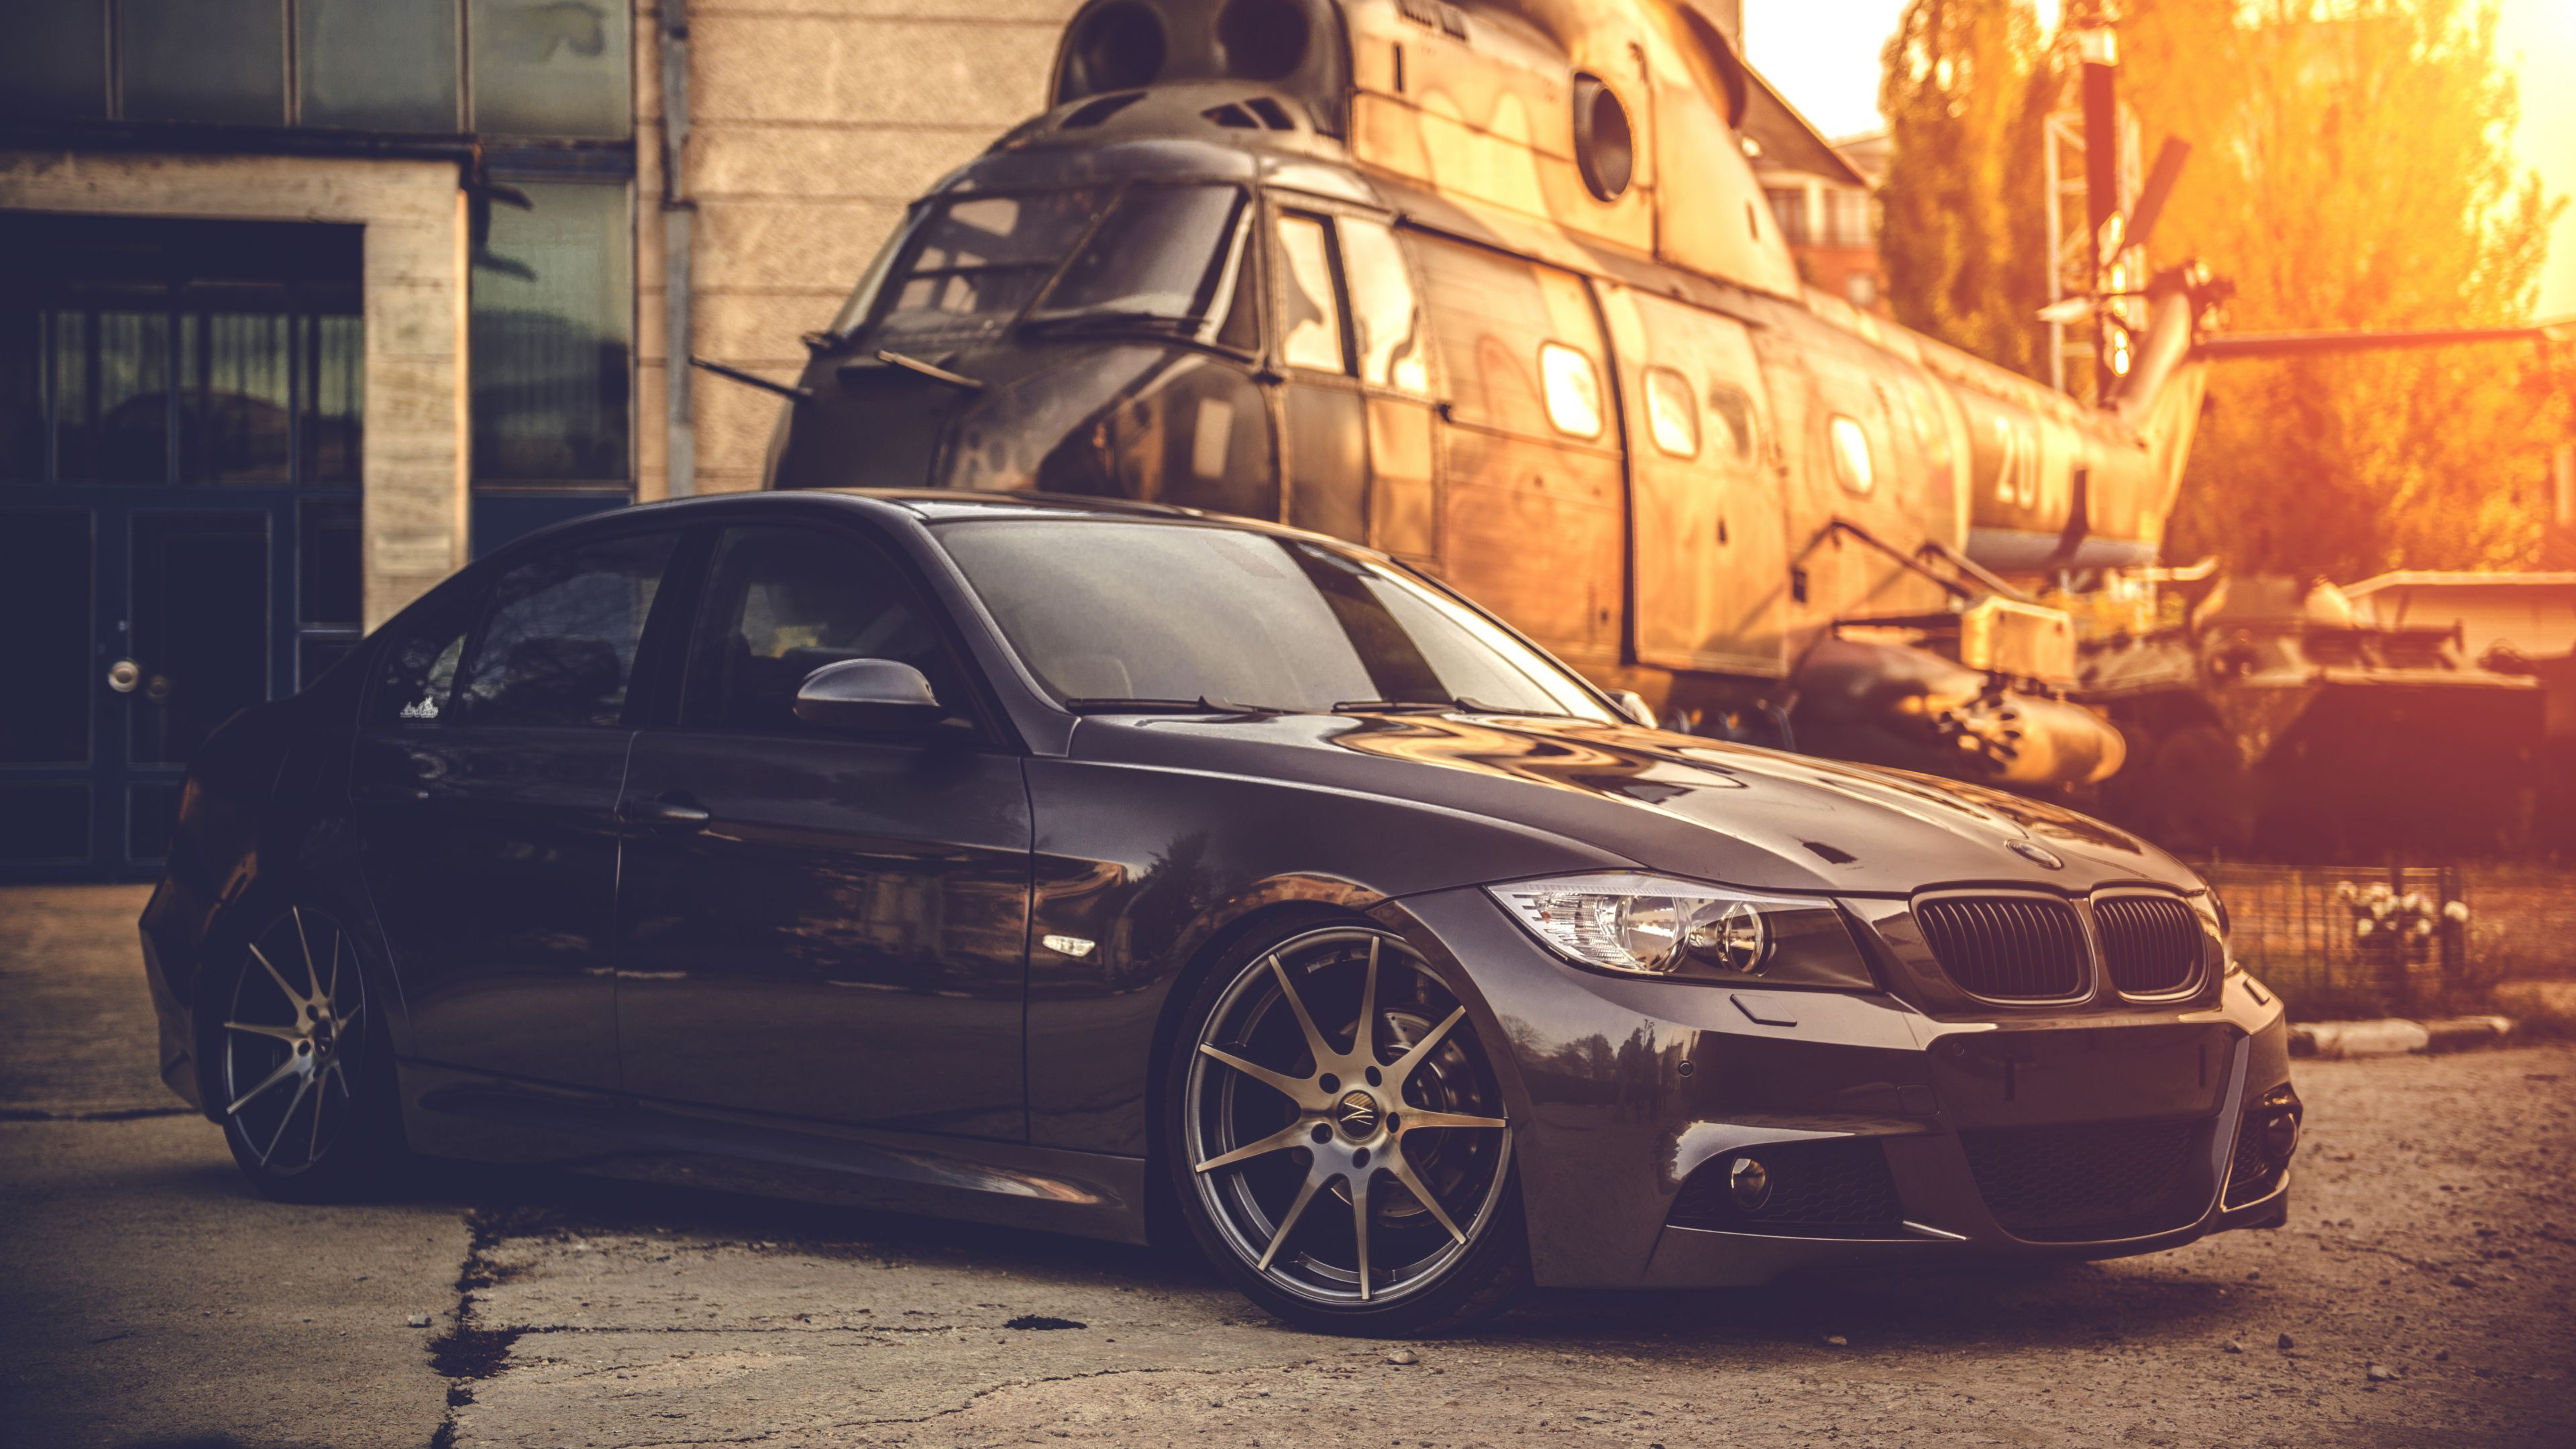 Bmw Car Black 4k Ultra Hd